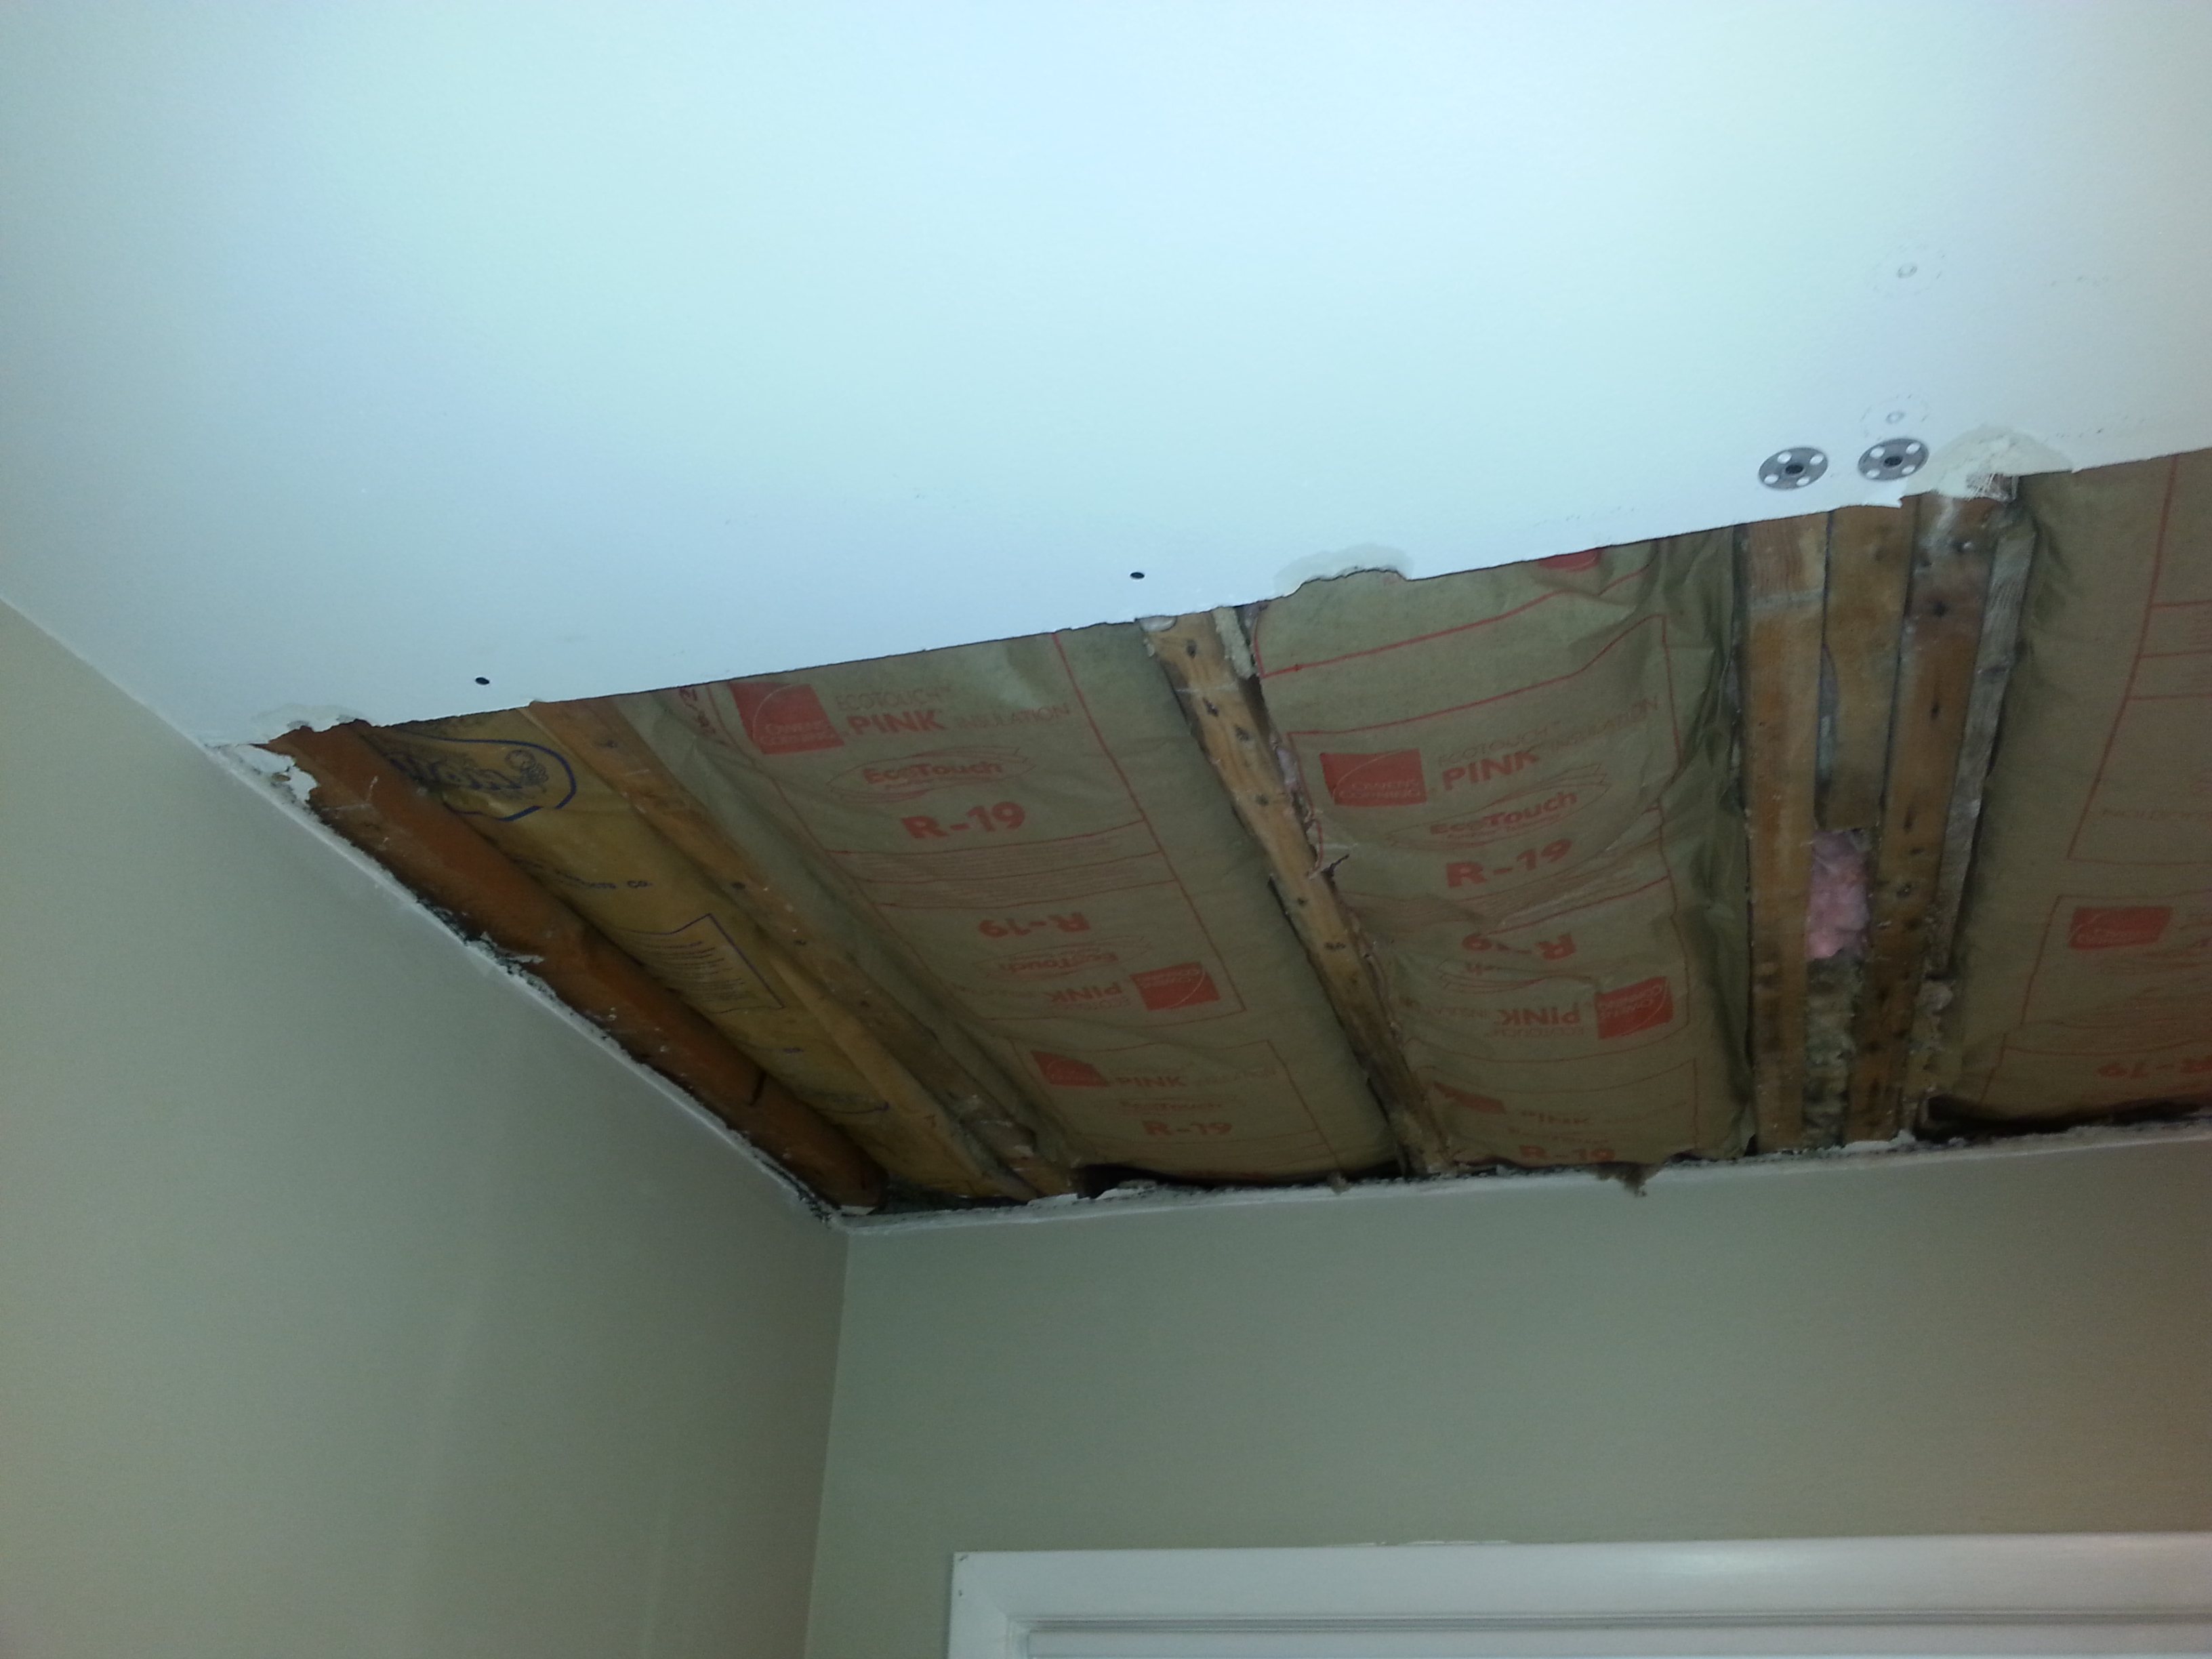 drywall contractor ceiling work popcorn img repair guy at